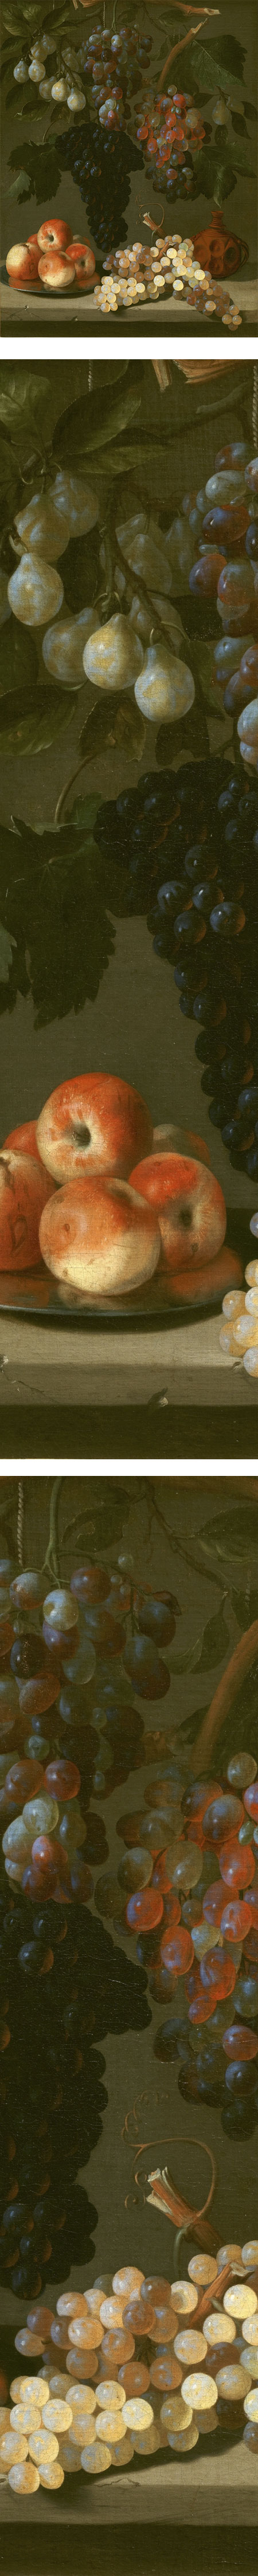 Still Life with Grapes, Apples and Plums, Juan de Espinosa